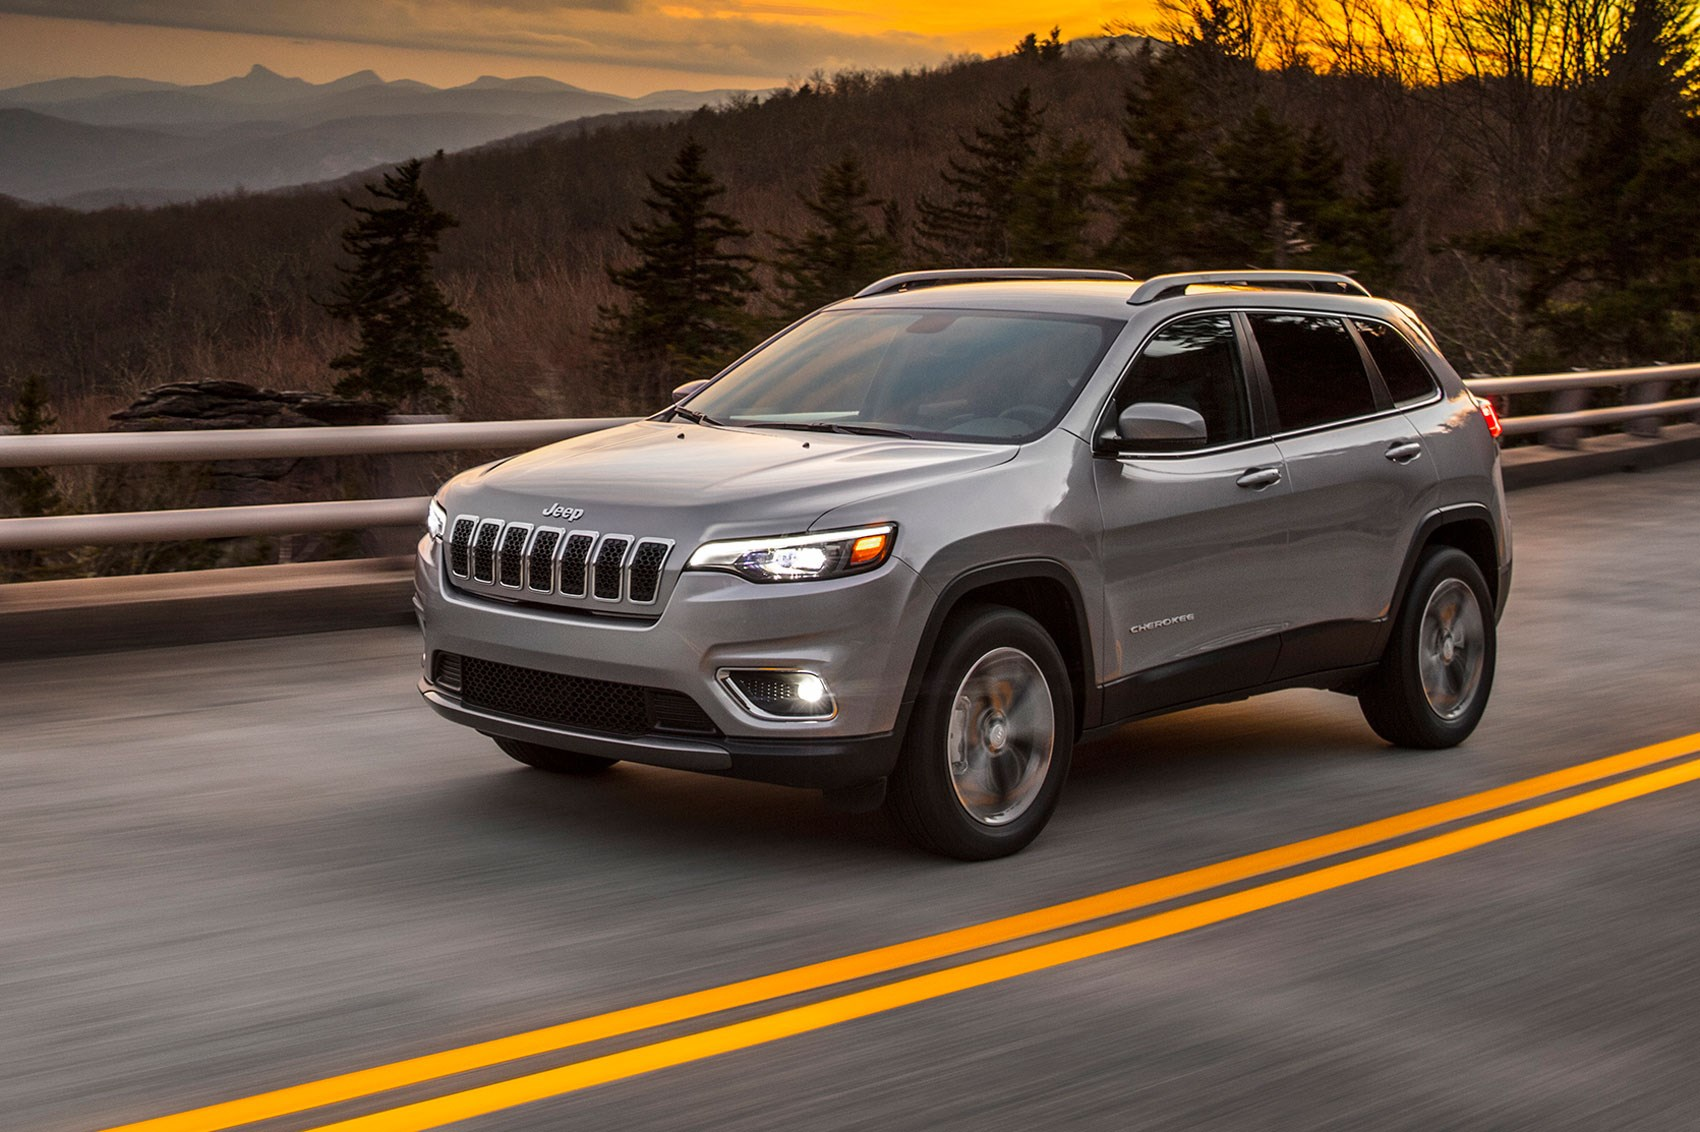 Jeep Cherokee: facelifted SUV heading for Detroit show